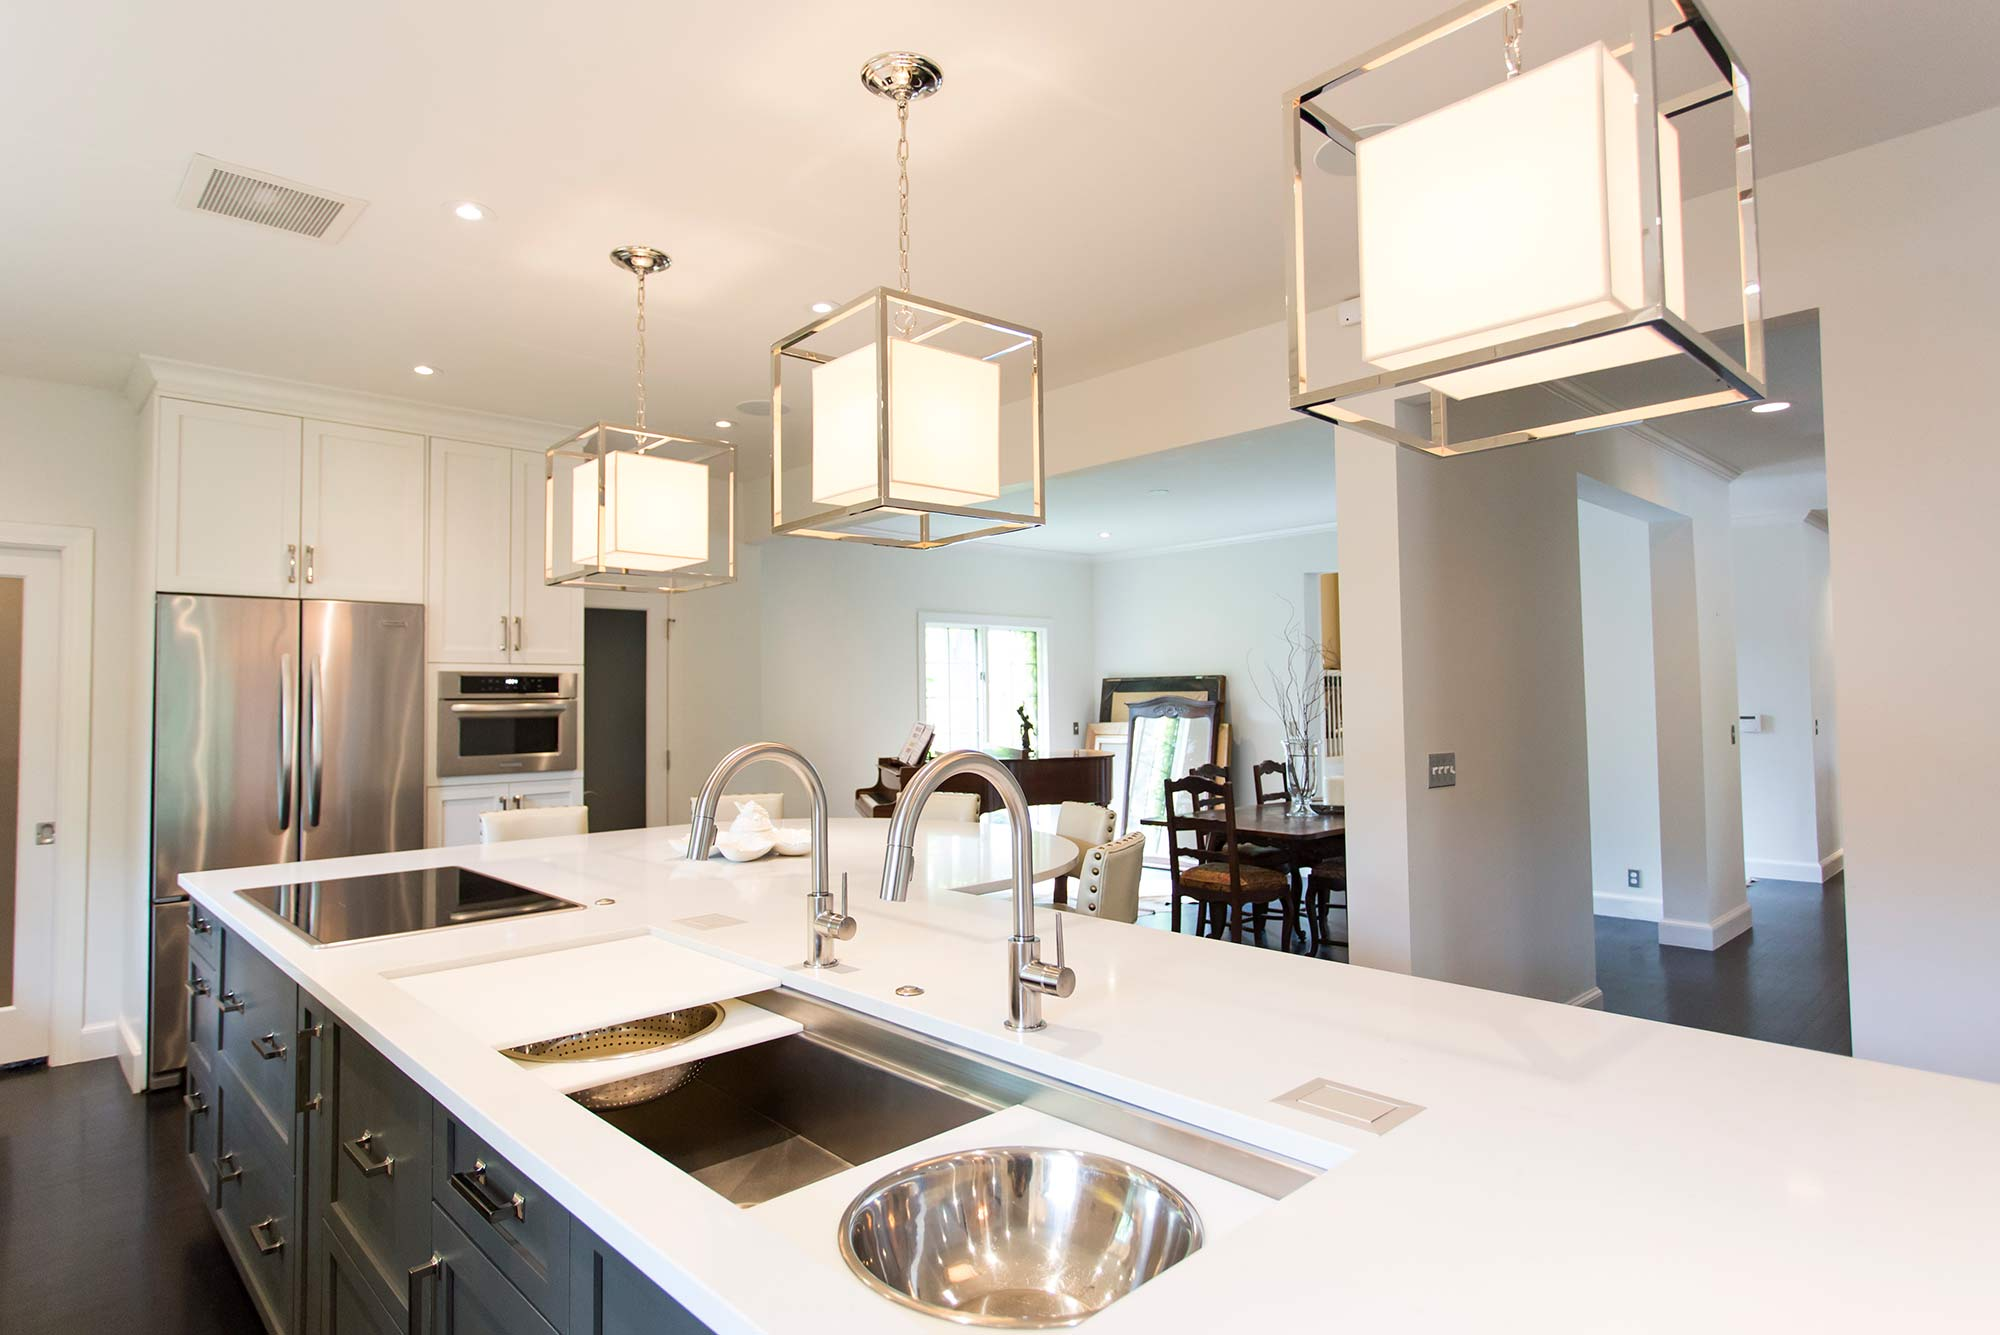 open kitchen sink remodeling sacramento elegant and galley workstation large stainless steel white done right 10